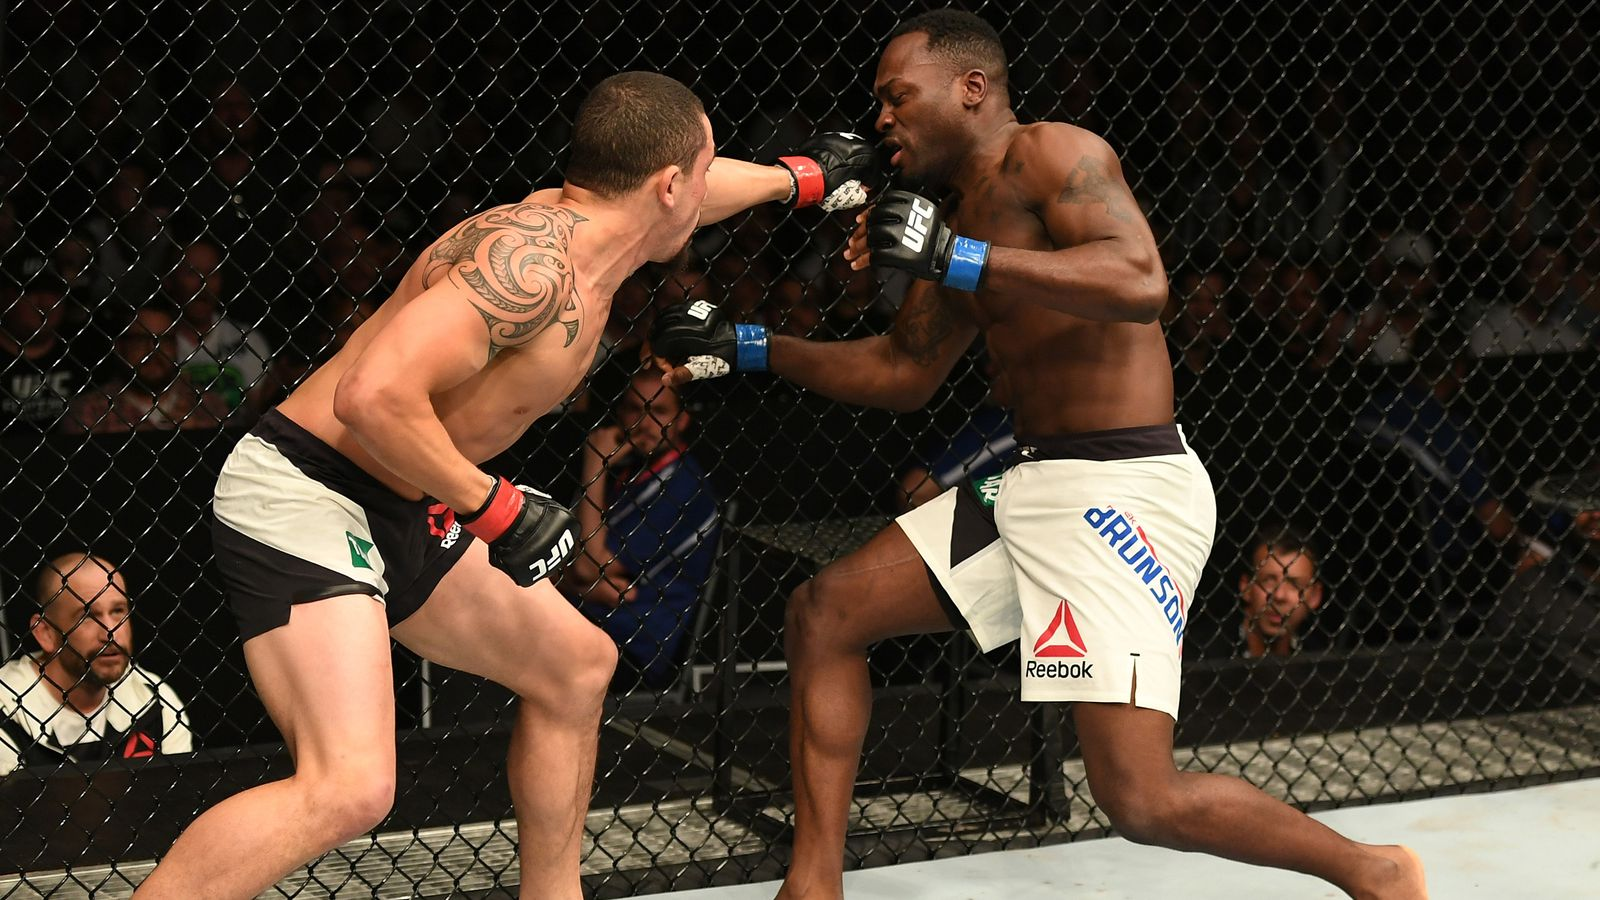 UFC 243 Video: Whittaker's Best Knockouts!